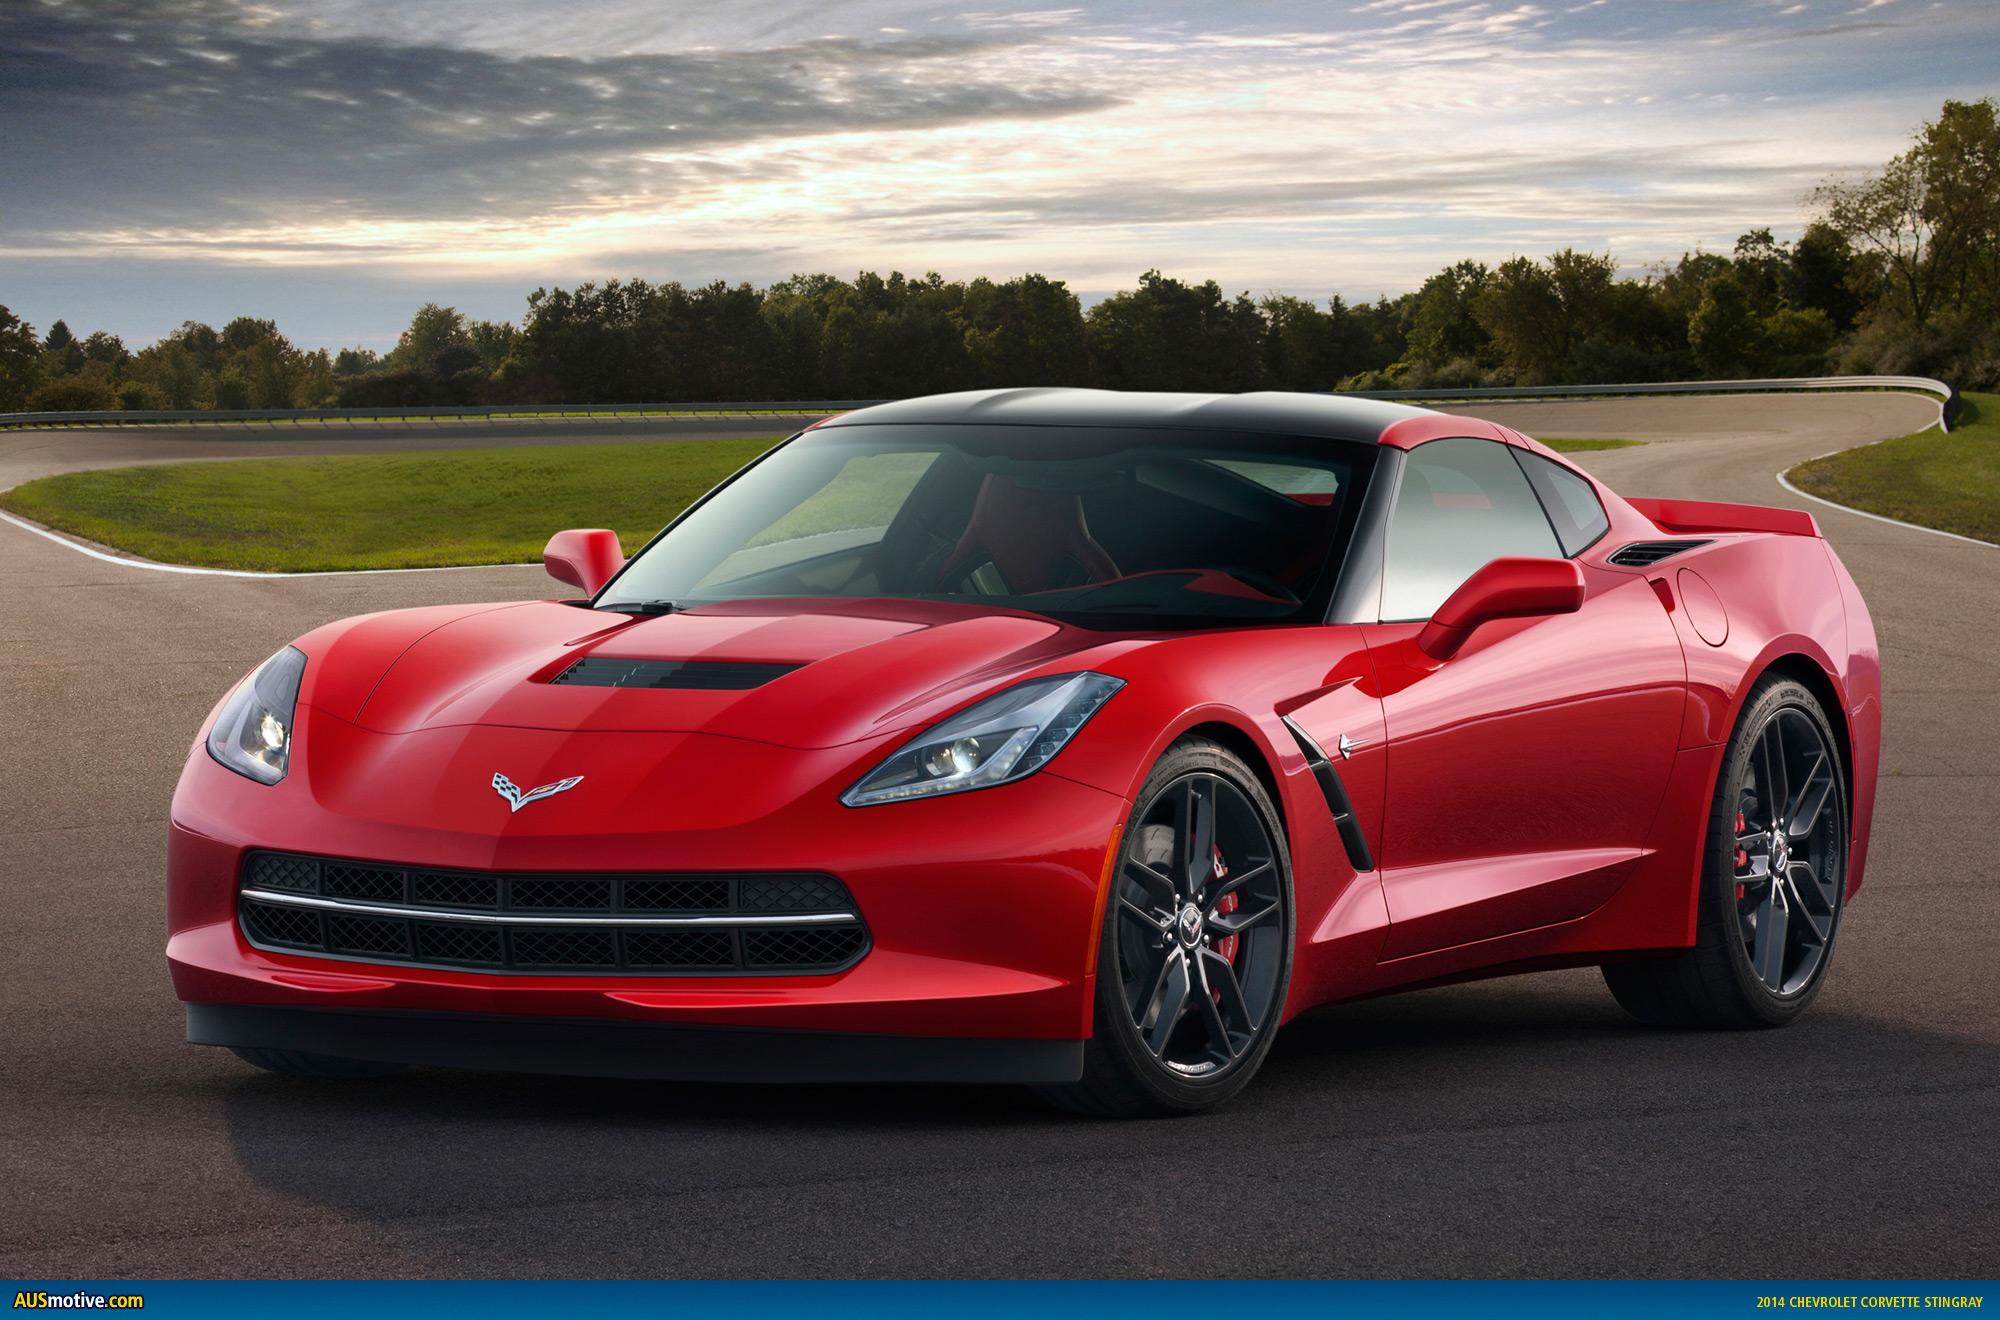 AUSmotive.com » Detroit 2013: Chevrolet Corvette Stingray